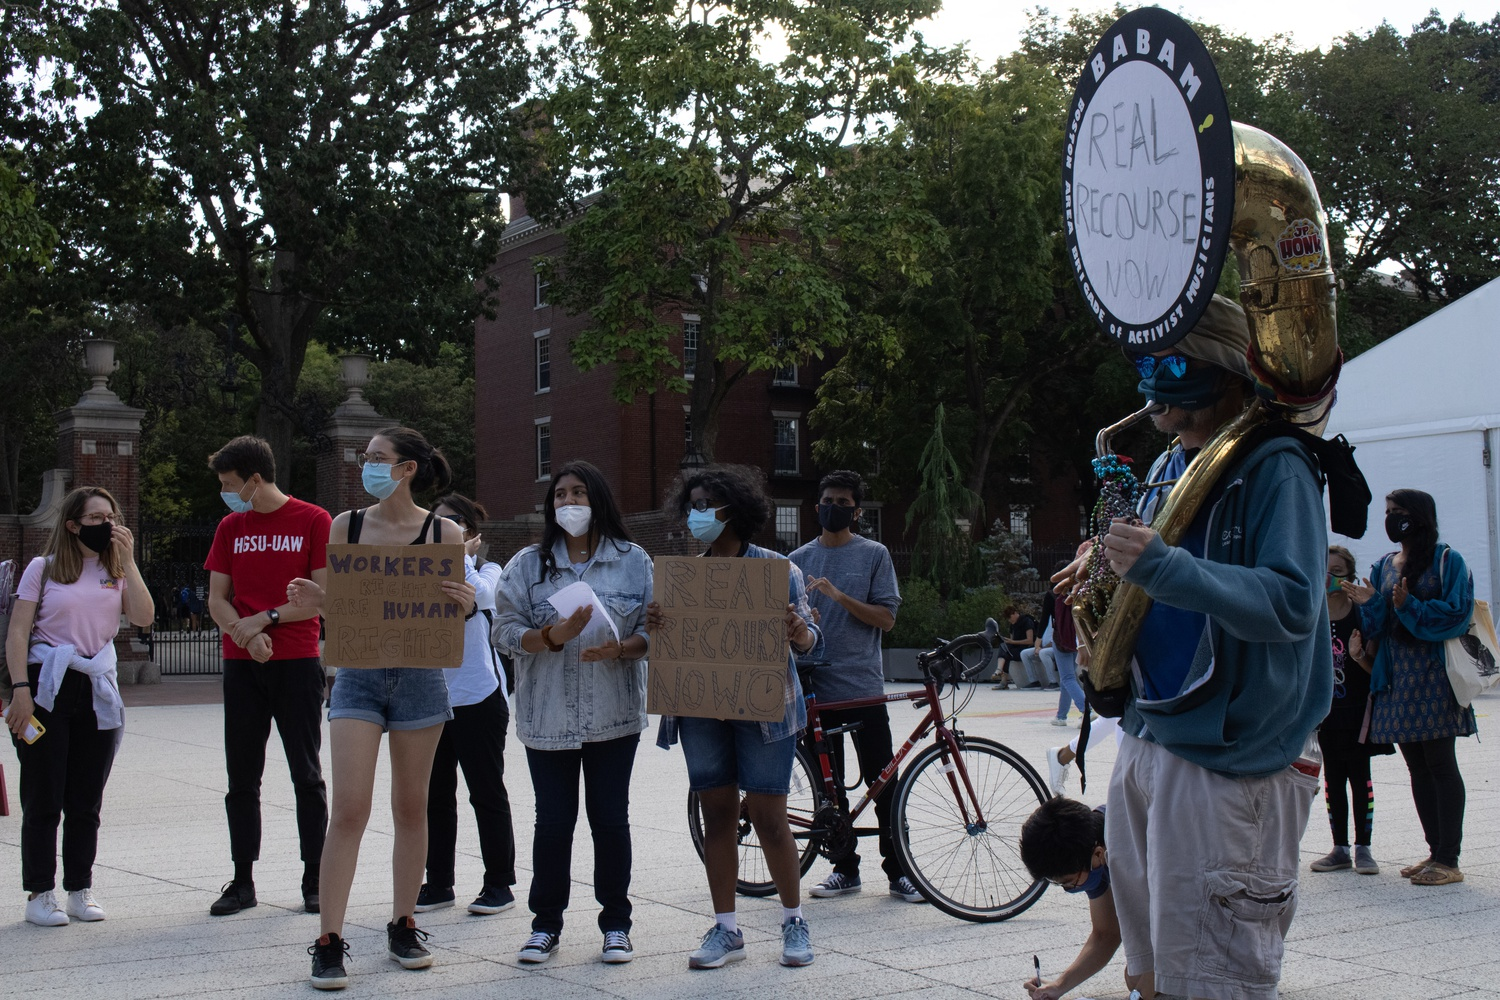 Harvard Graduate Students Union-United Automobile Workers representatives argued for the importance of having an independent arbitration option for victims of sexual harassment and assault.